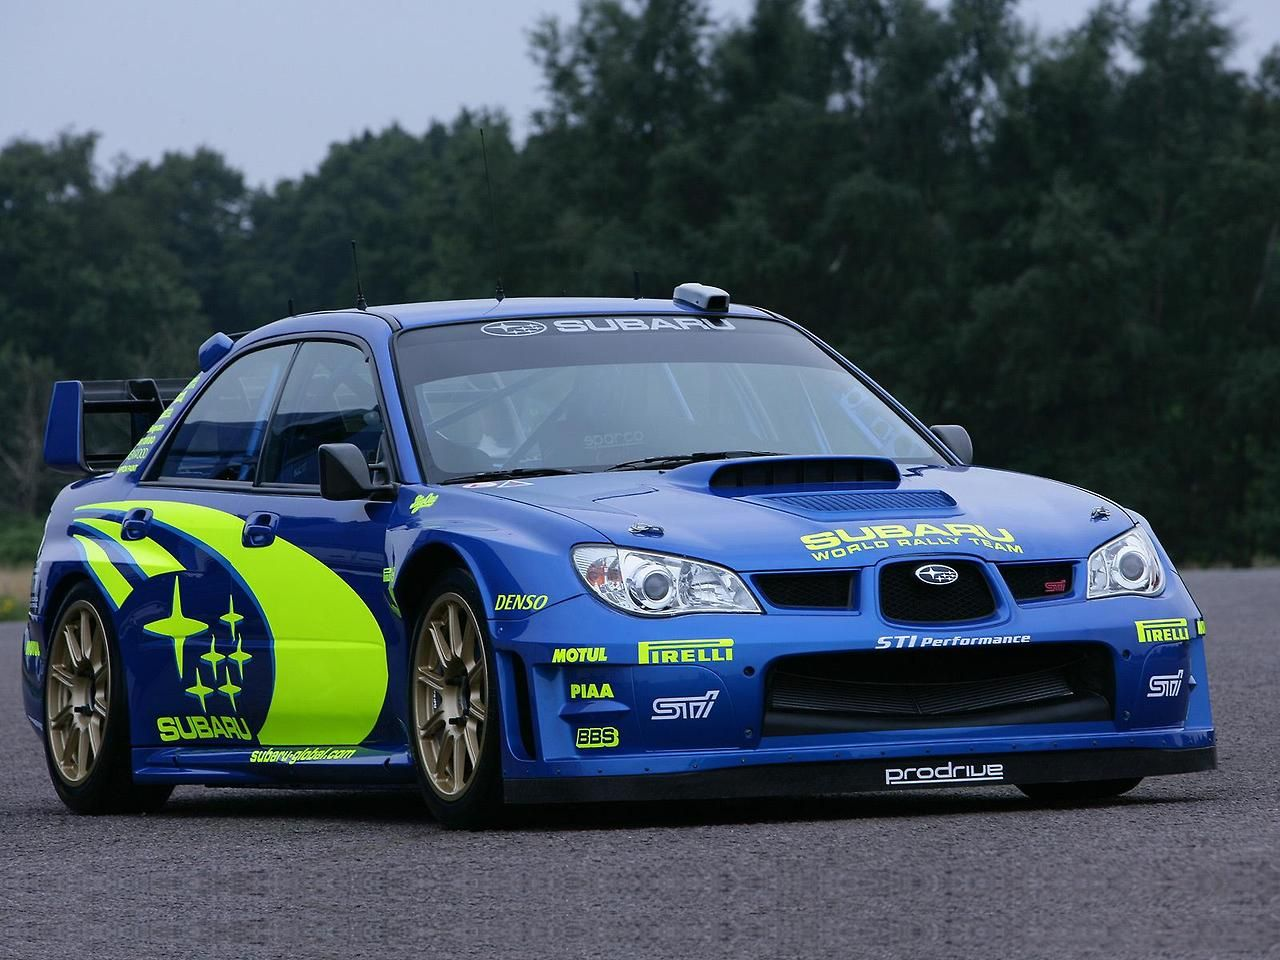 subaru impreza wrc rally car subaru wrx sti pinterest subaru impreza wrc subaru impreza. Black Bedroom Furniture Sets. Home Design Ideas